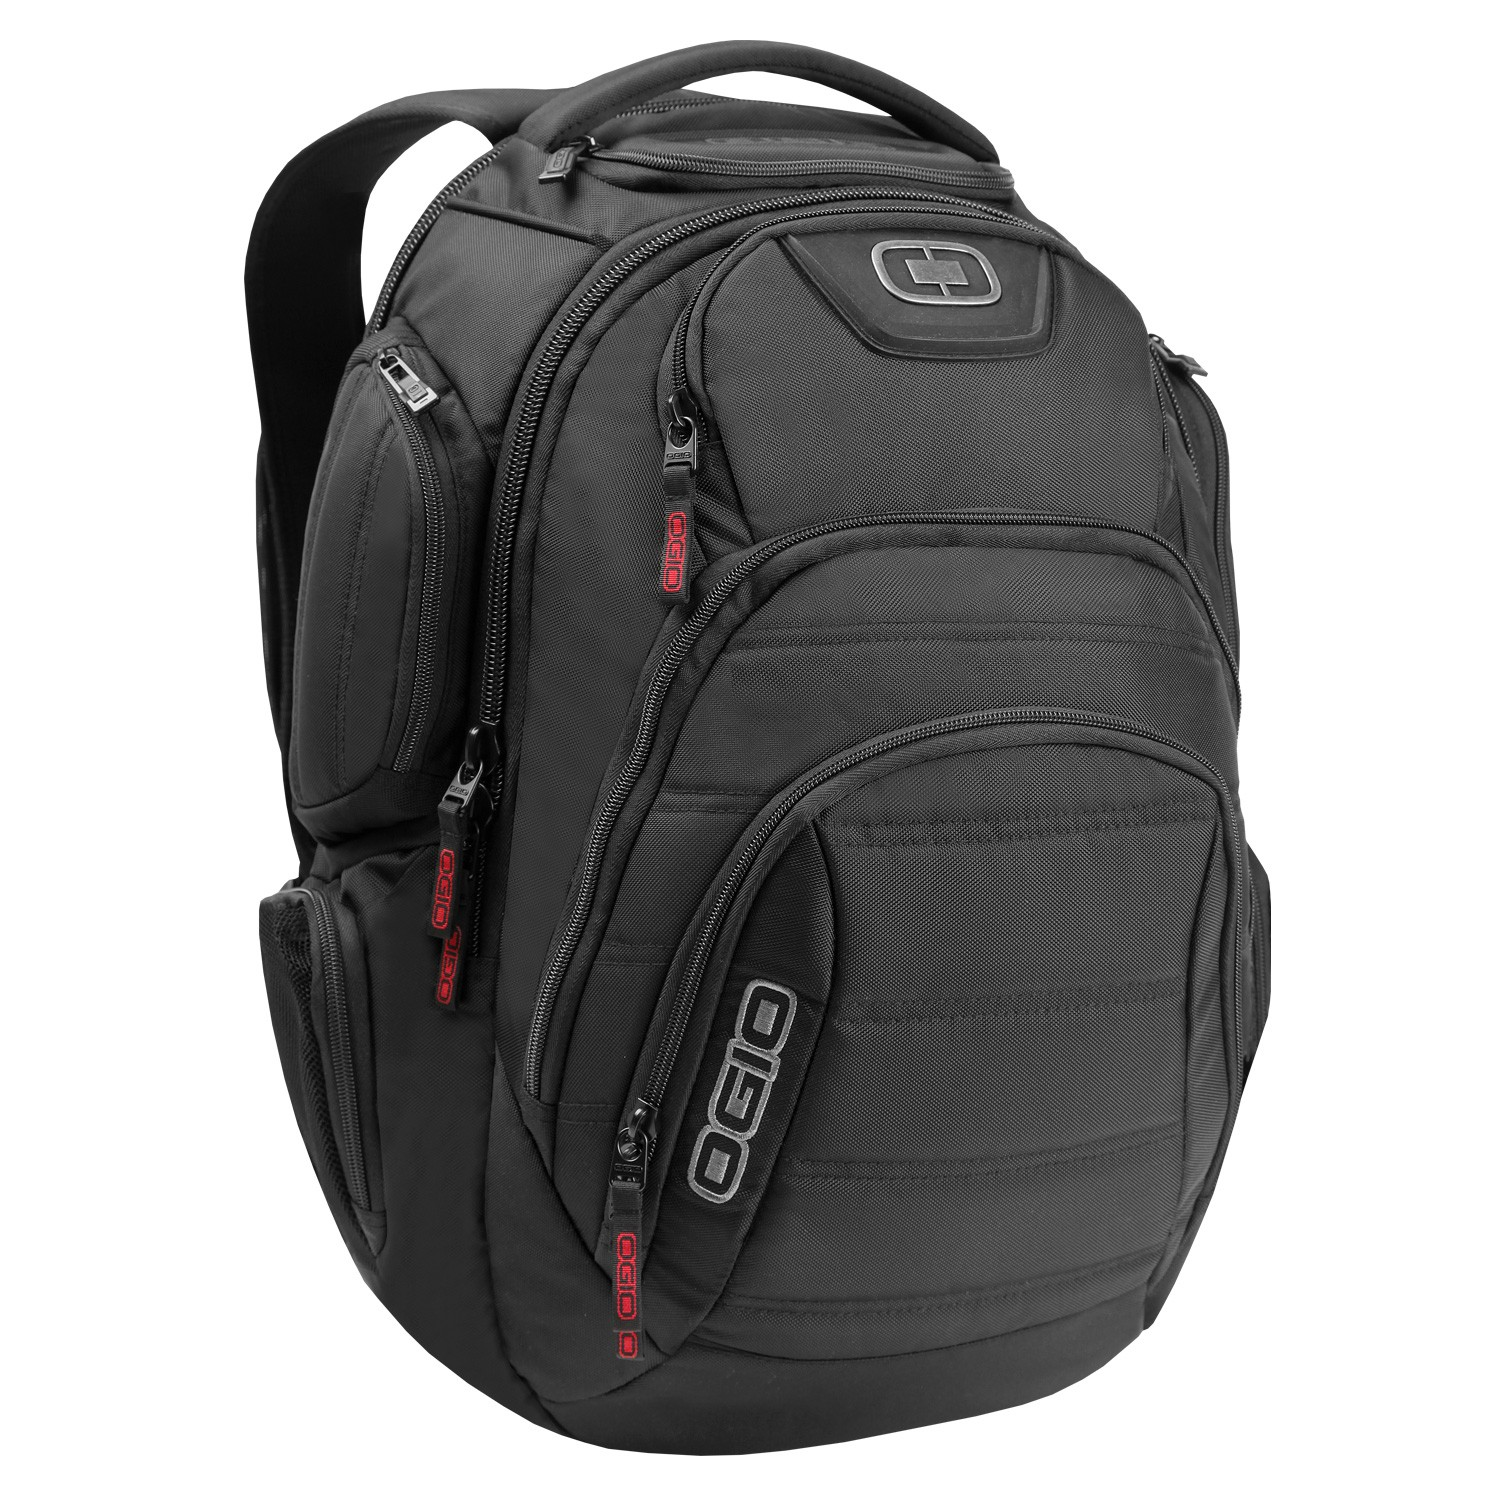 Ogio Backpack Laptop OpJr6byO